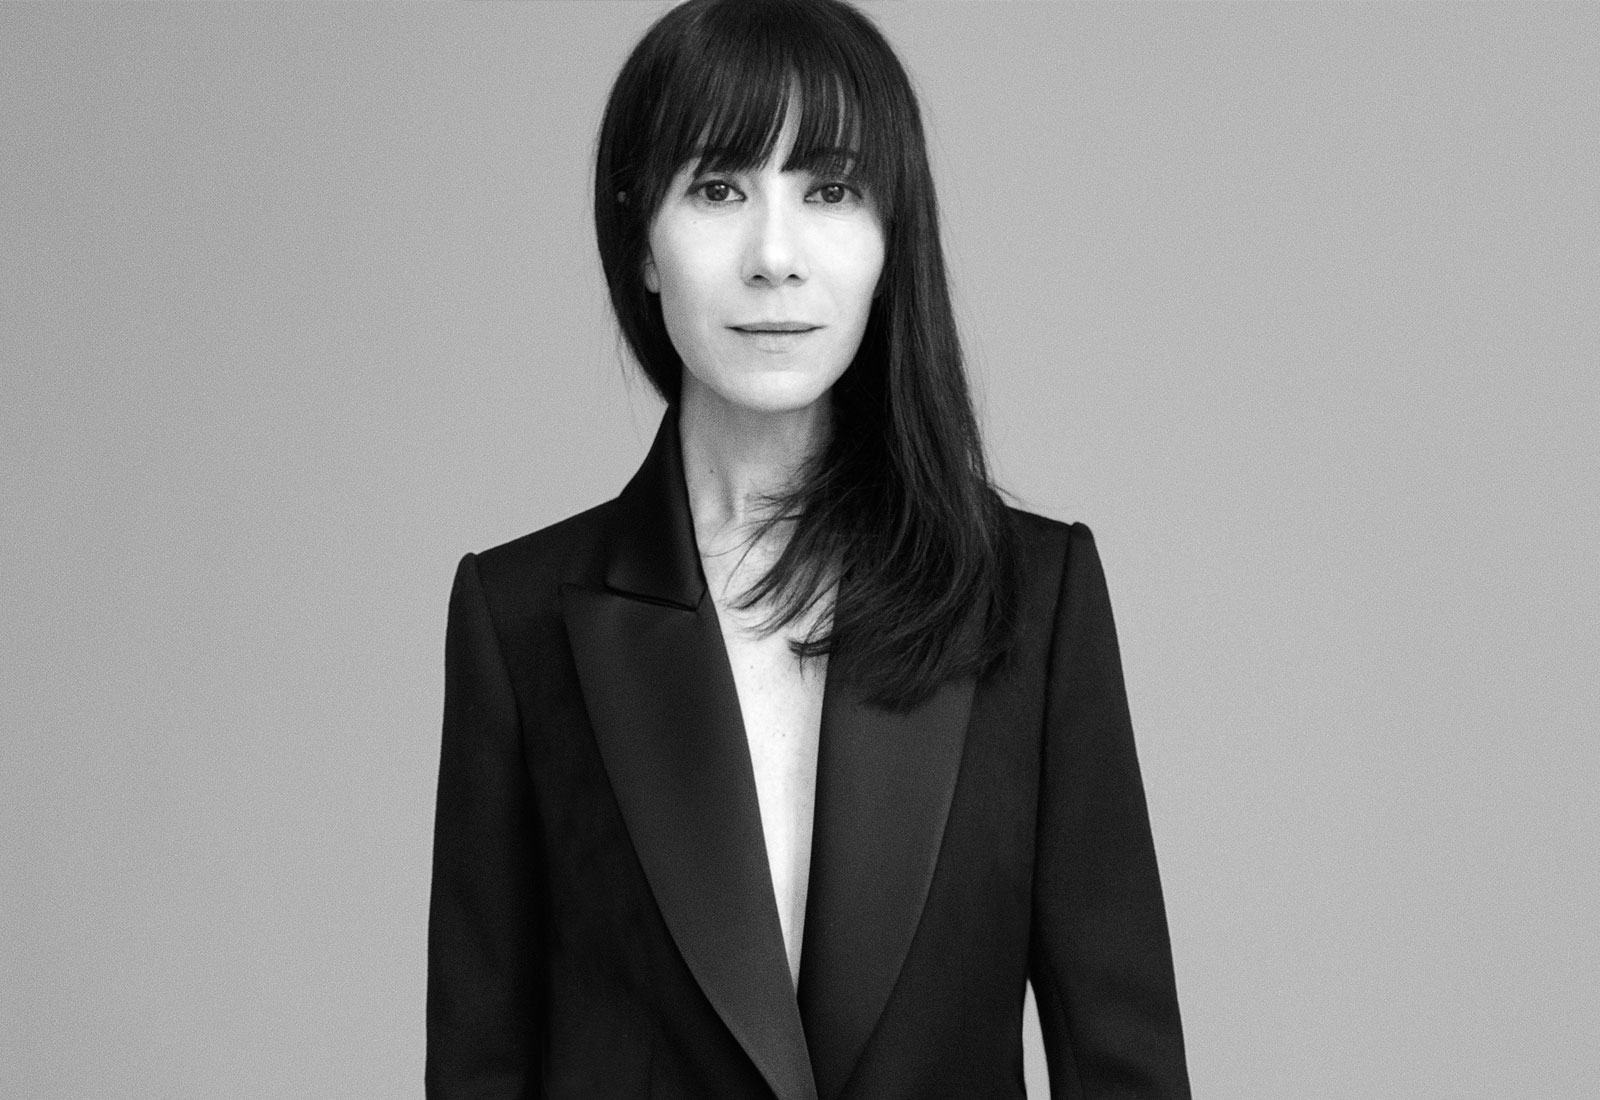 fashion designer bouchra jarrar for lanvin new creative director 1600 x 1100